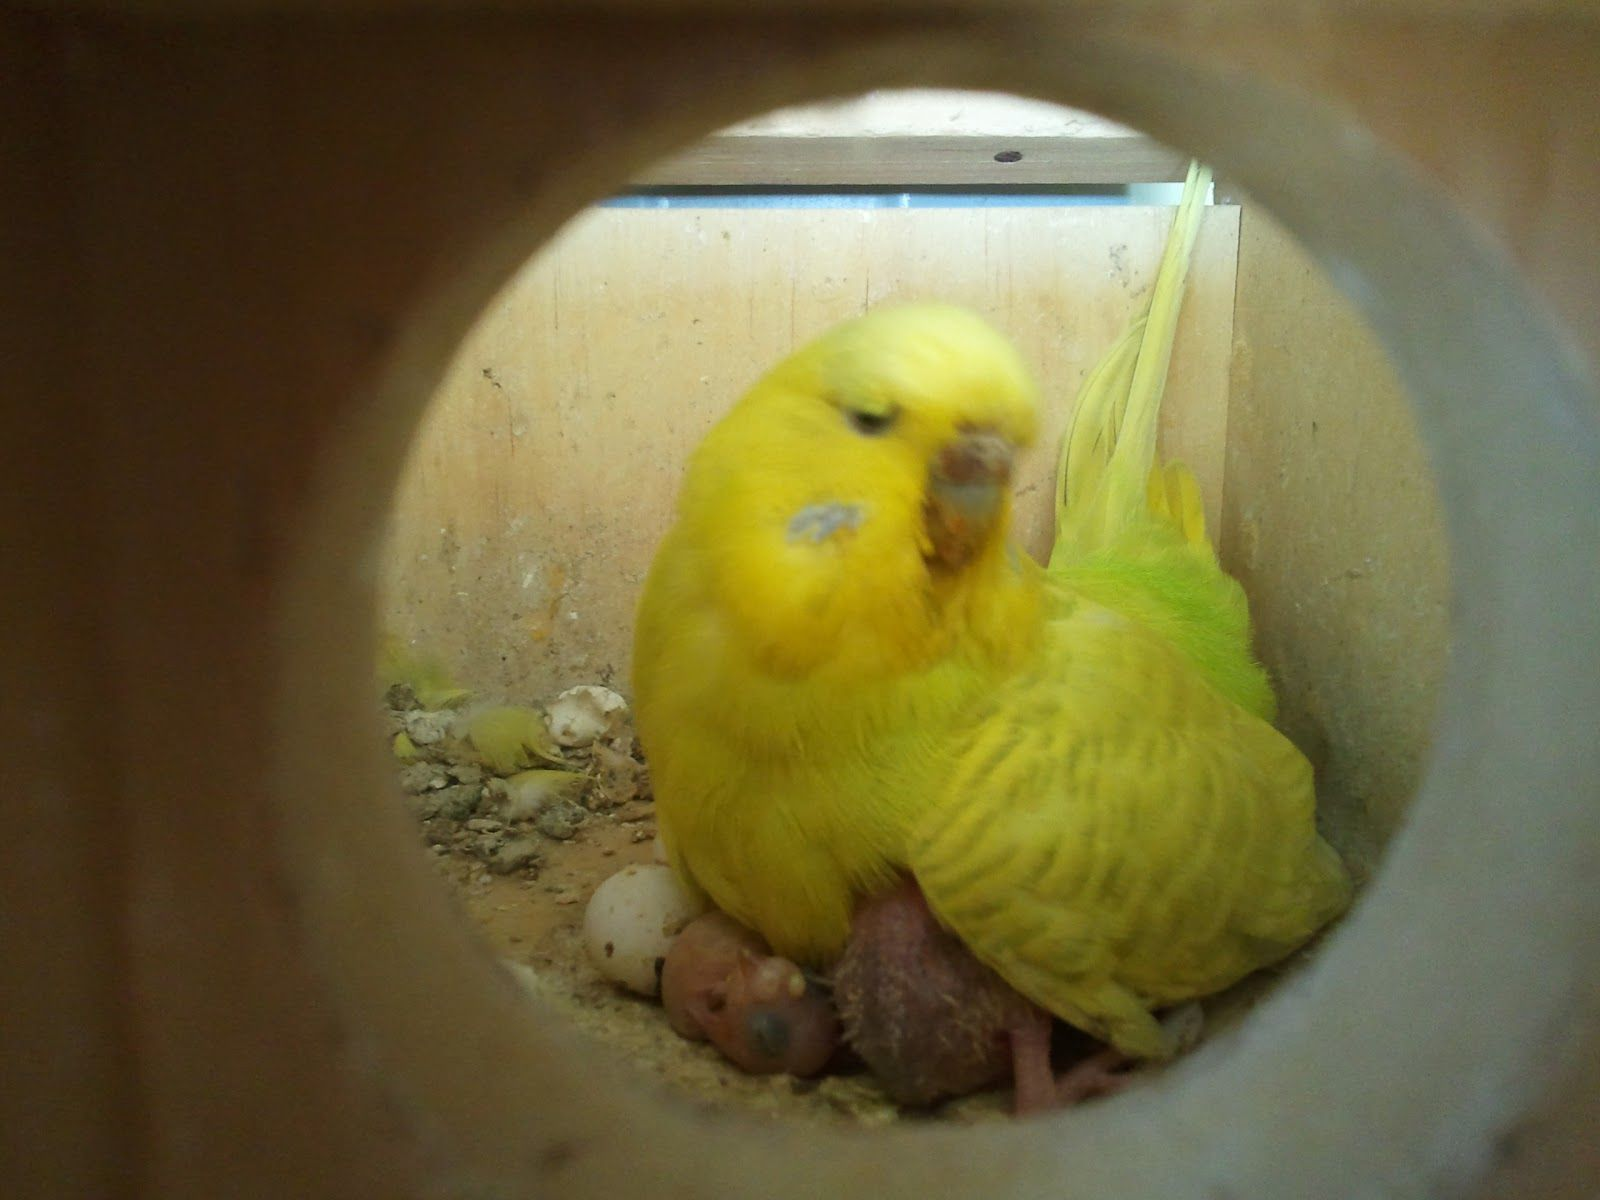 Mummy budgie looking after her new born baby budgies  This